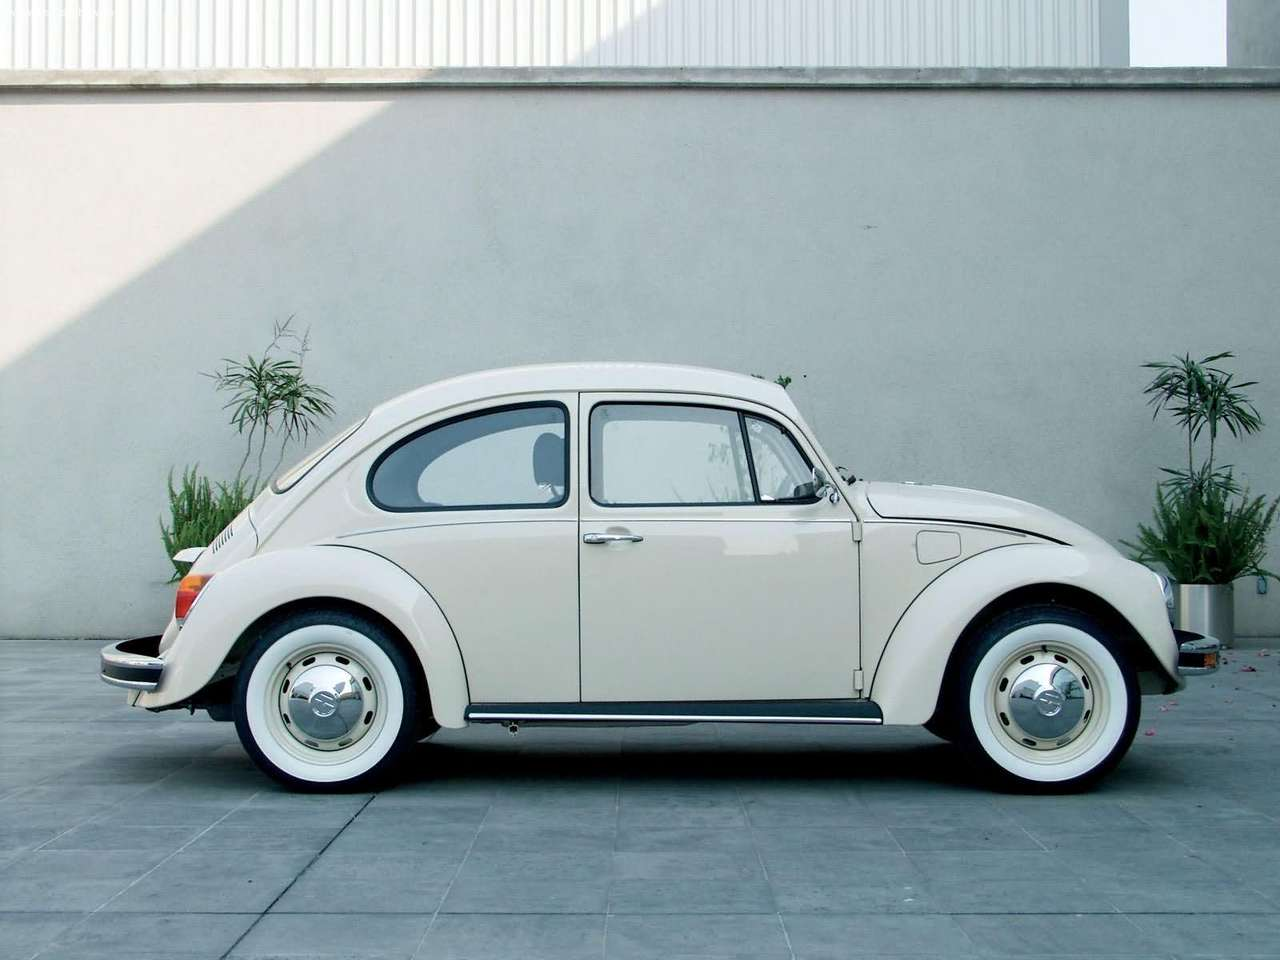 Reference photo, a last edition VW Beetle. The last 300 produced.